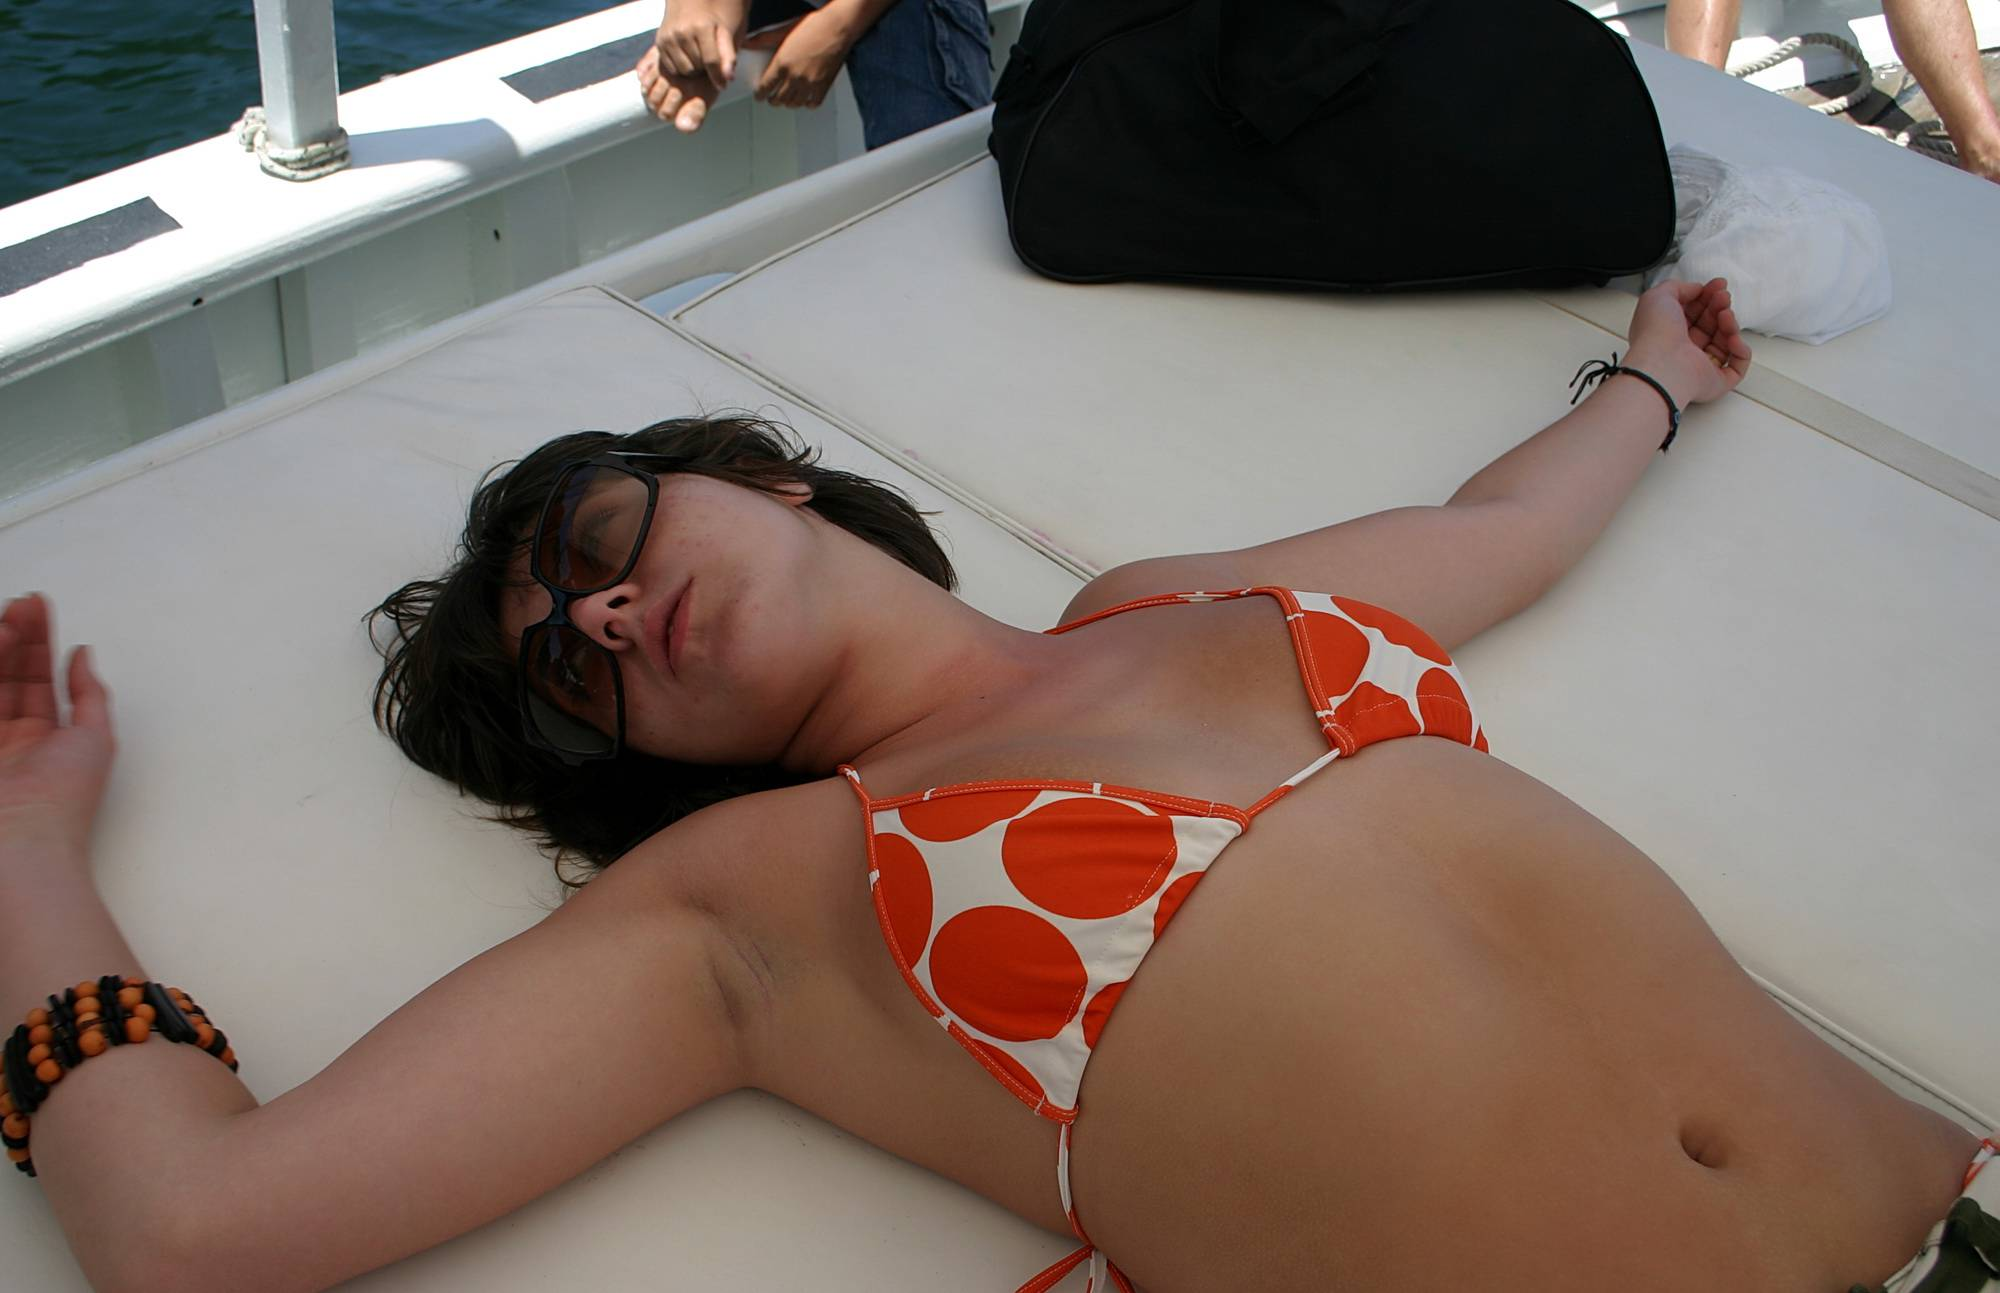 Nudist Pictures On-Boat Relaxation Shots - 2